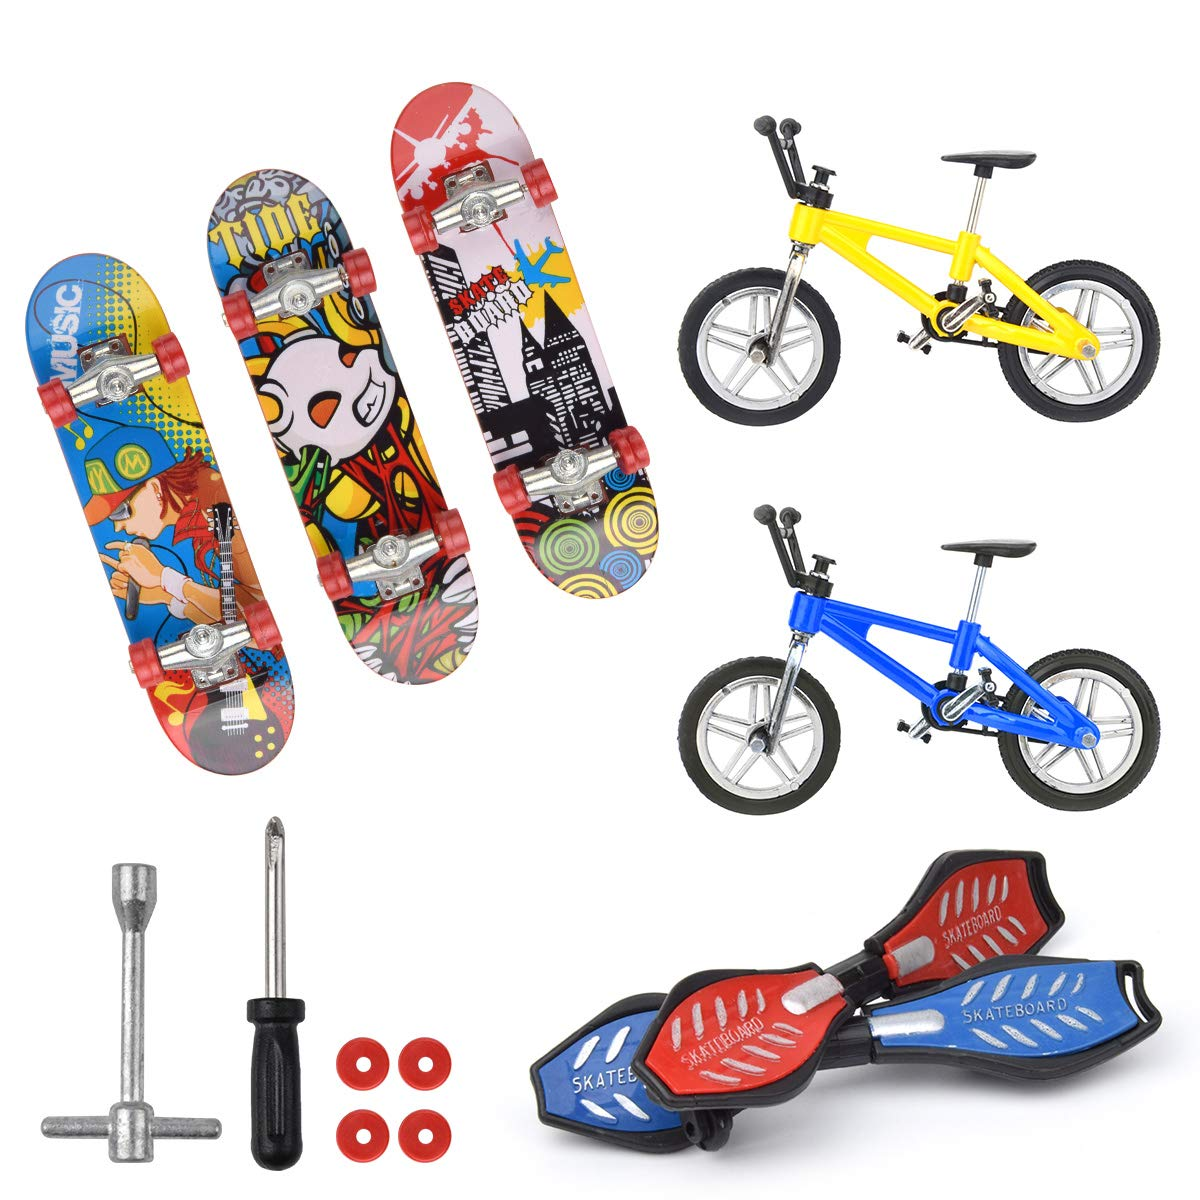 Hotusi Mini Finger Sports Skateboards/Bikes/Swing Boards for Party Favors Educational Finger Toy by Hotusi